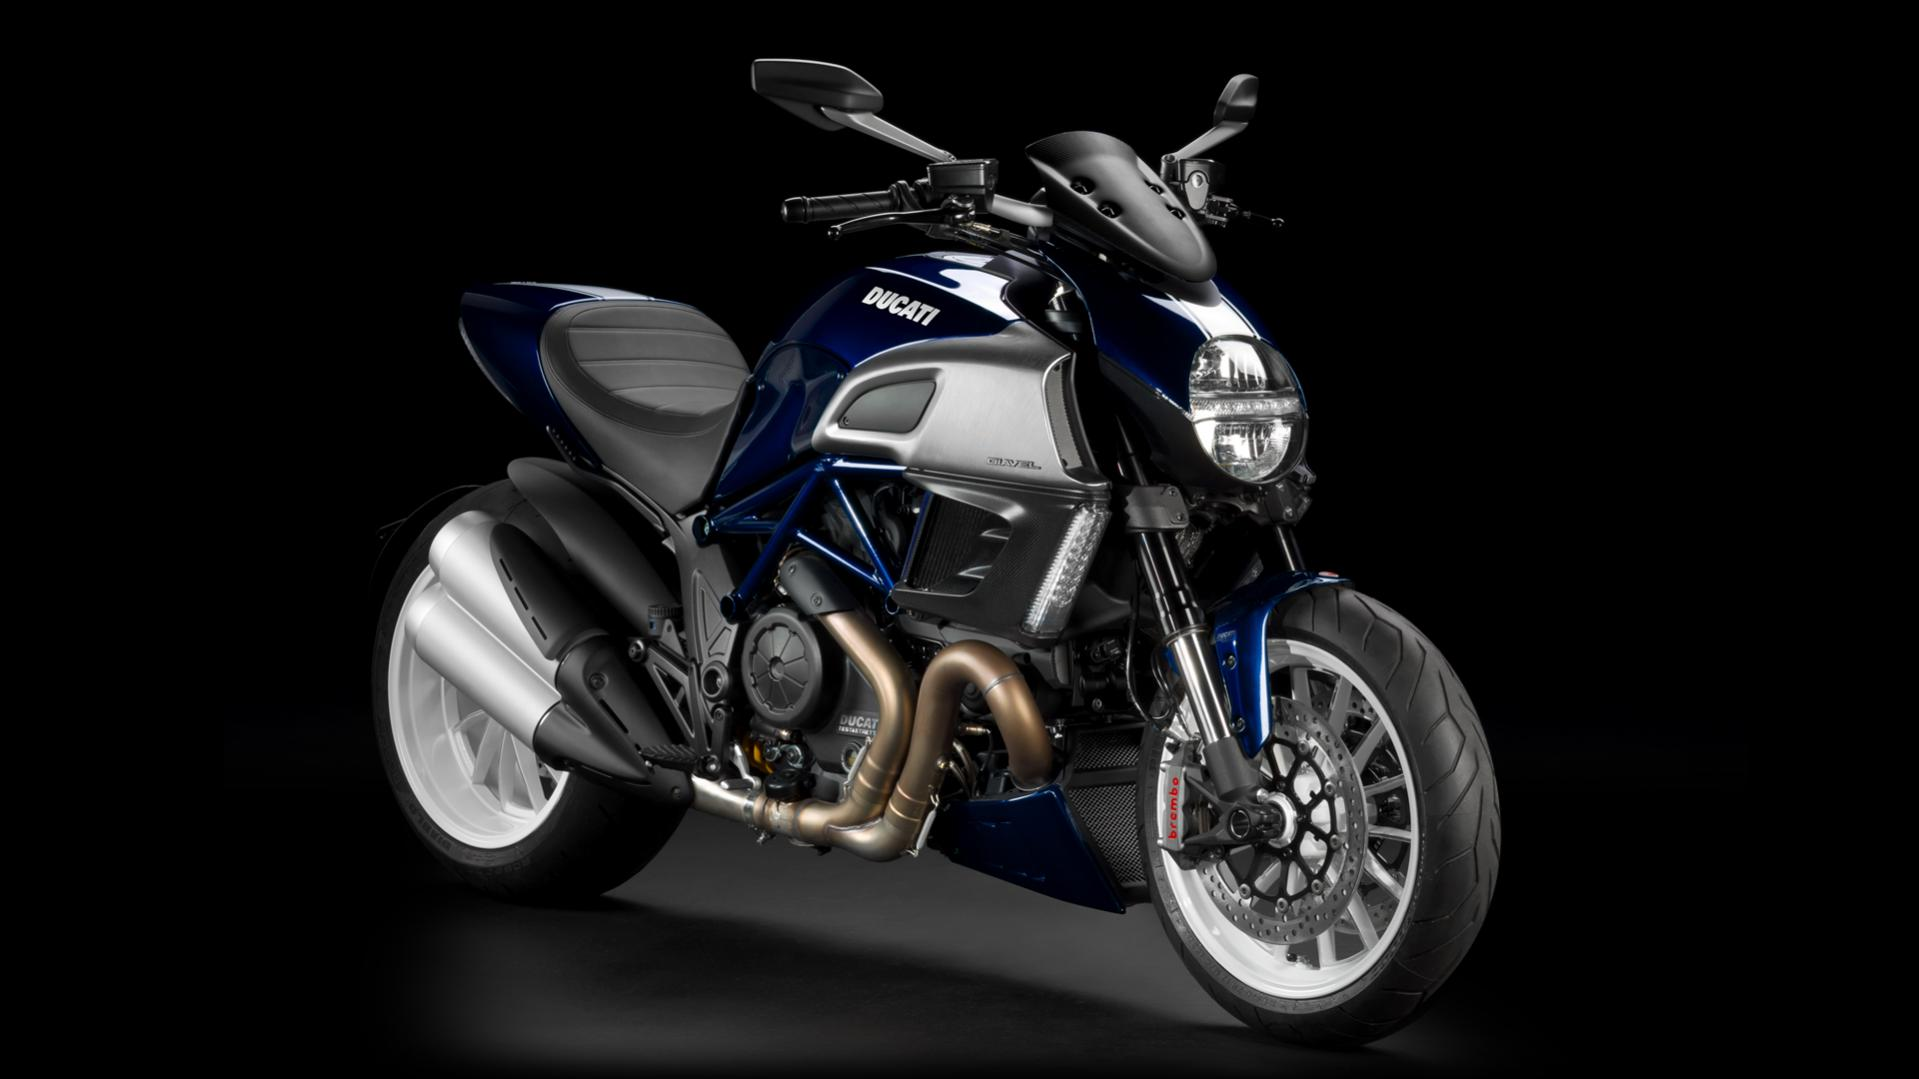 Click image for larger version  Name:Diavel_2013_Studio_BW_B01_1920x1080.mediagallery_output_image_[1920x1080].jpg Views:25 Size:123.5 KB ID:14421